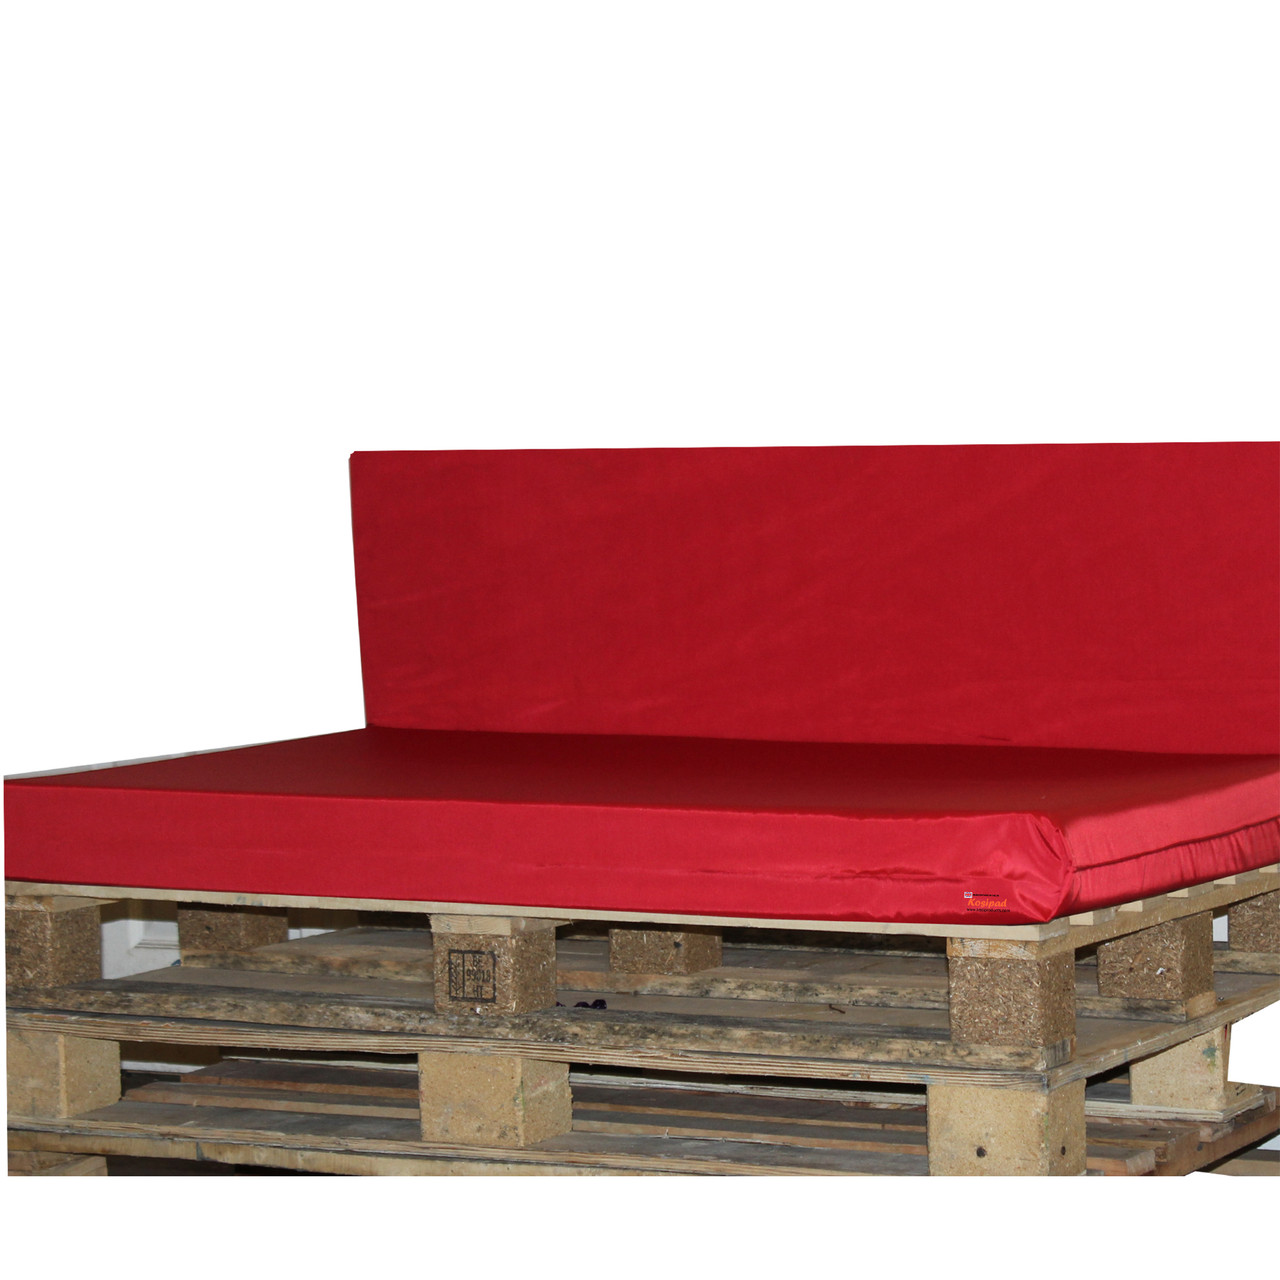 Kosipad Red cushions for pallet furniture for Euro Pallets